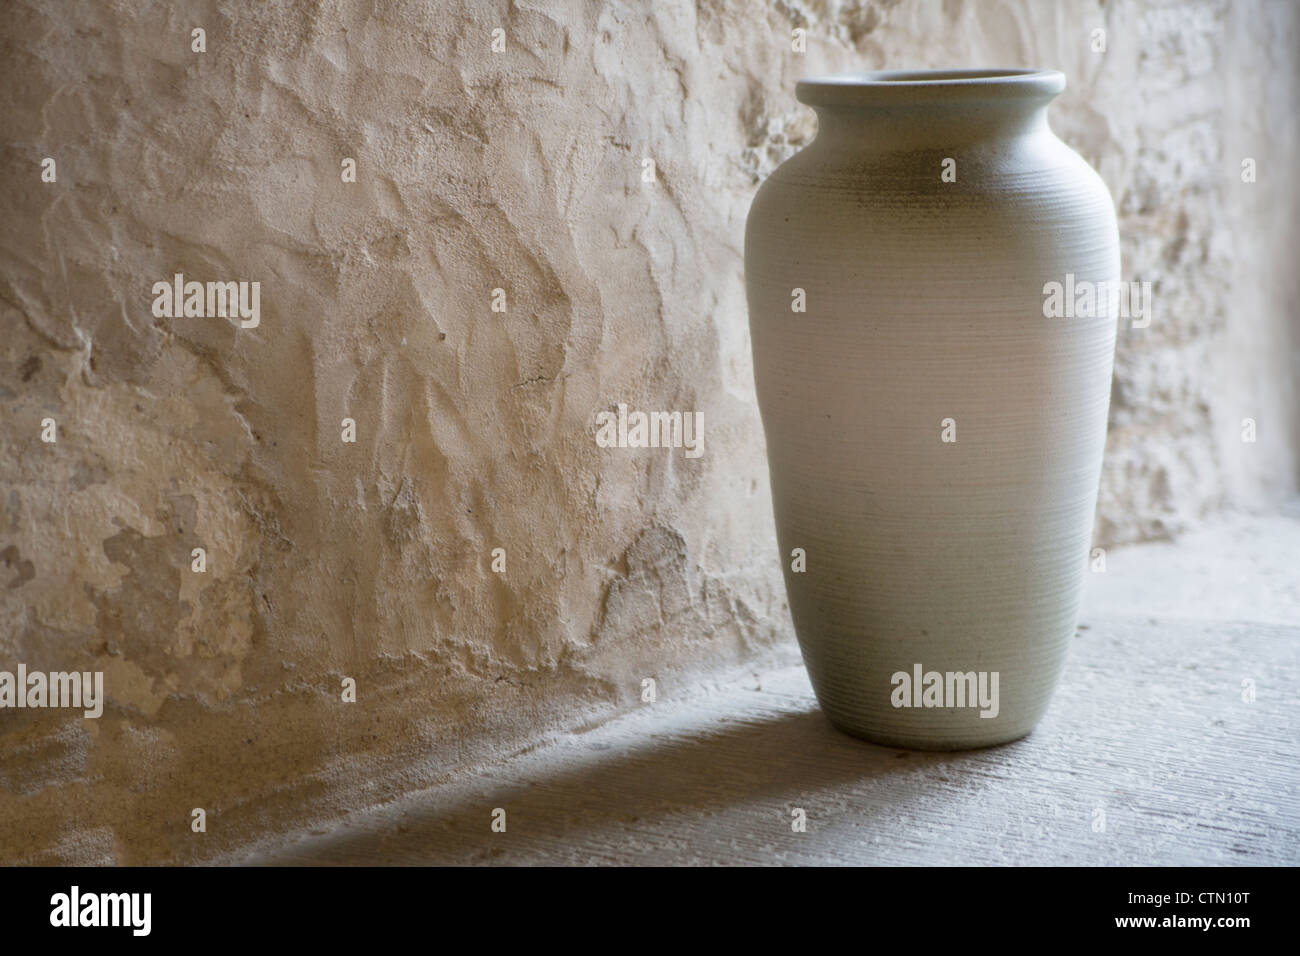 Handmade and smoothed vase in room corner - Stock Image